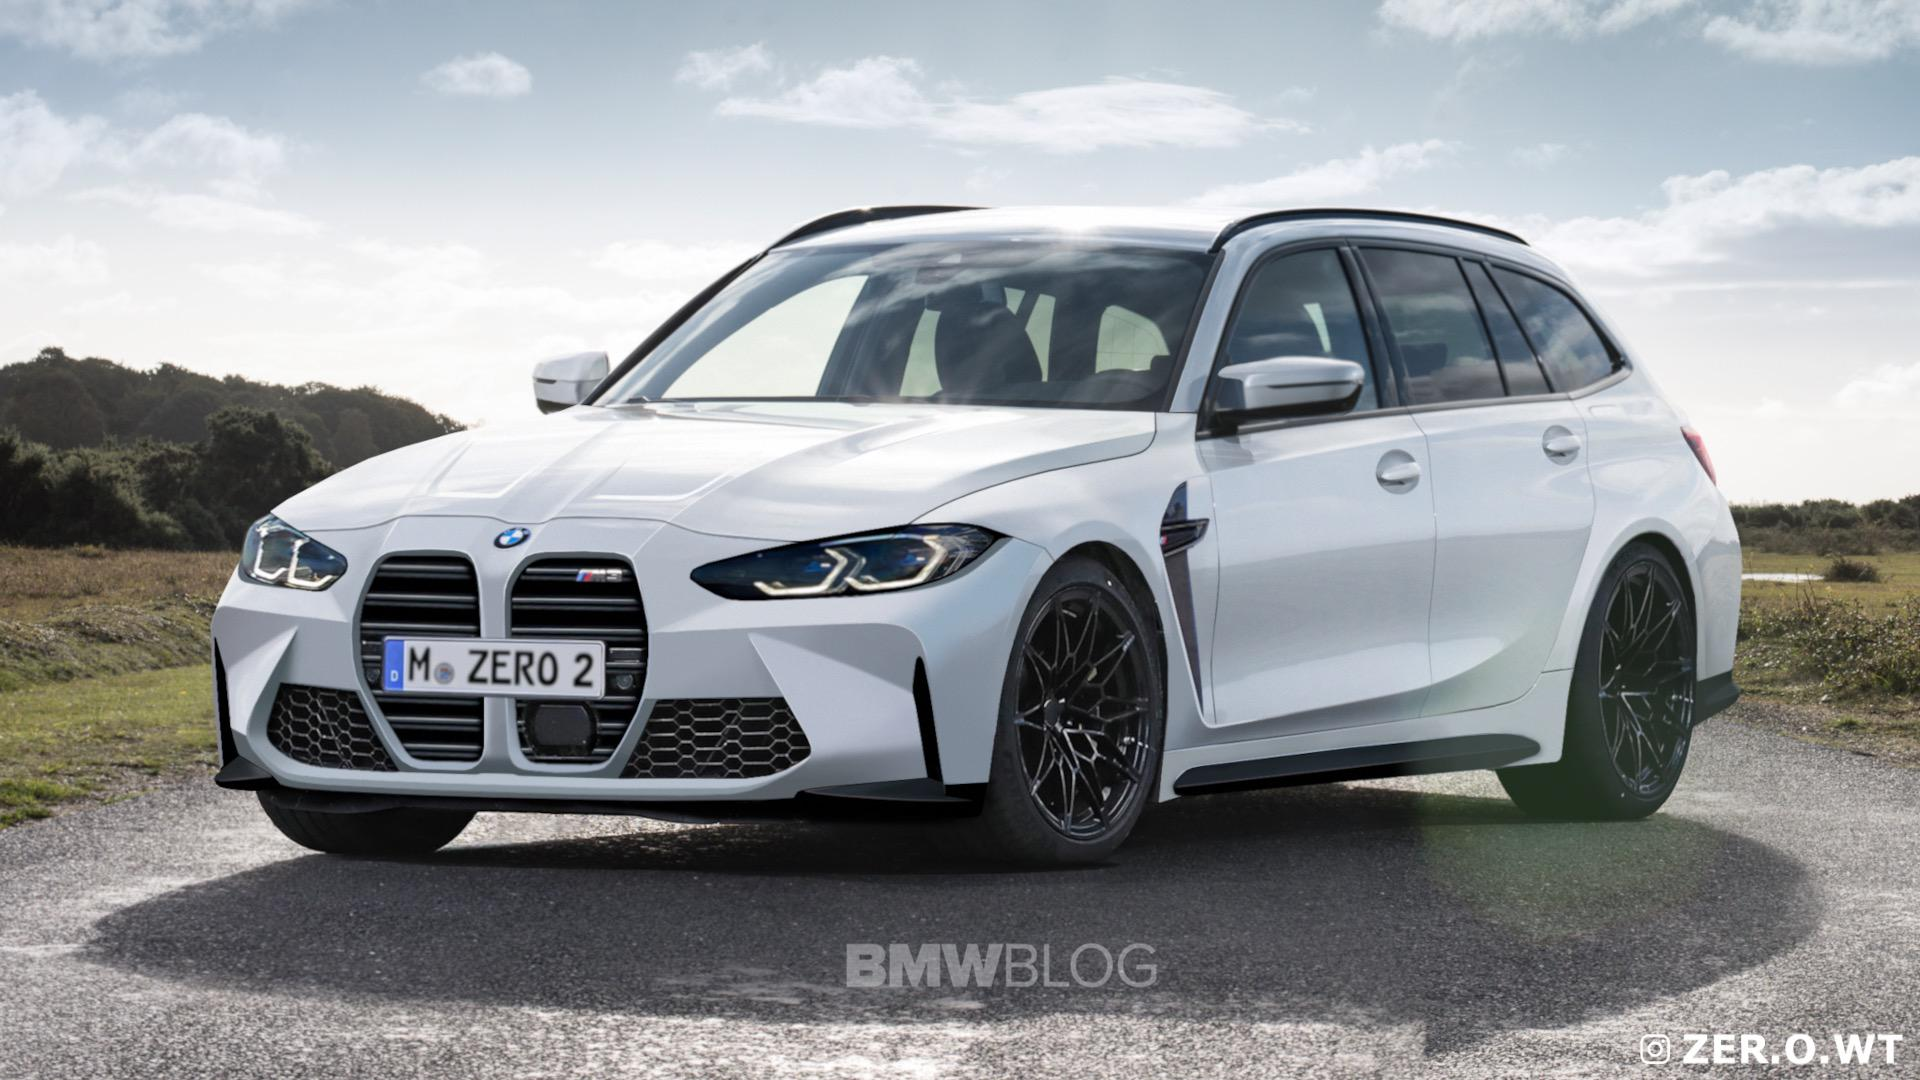 Bmw M3 Velocityraptors Net Handy Tips About Auto Repair And More